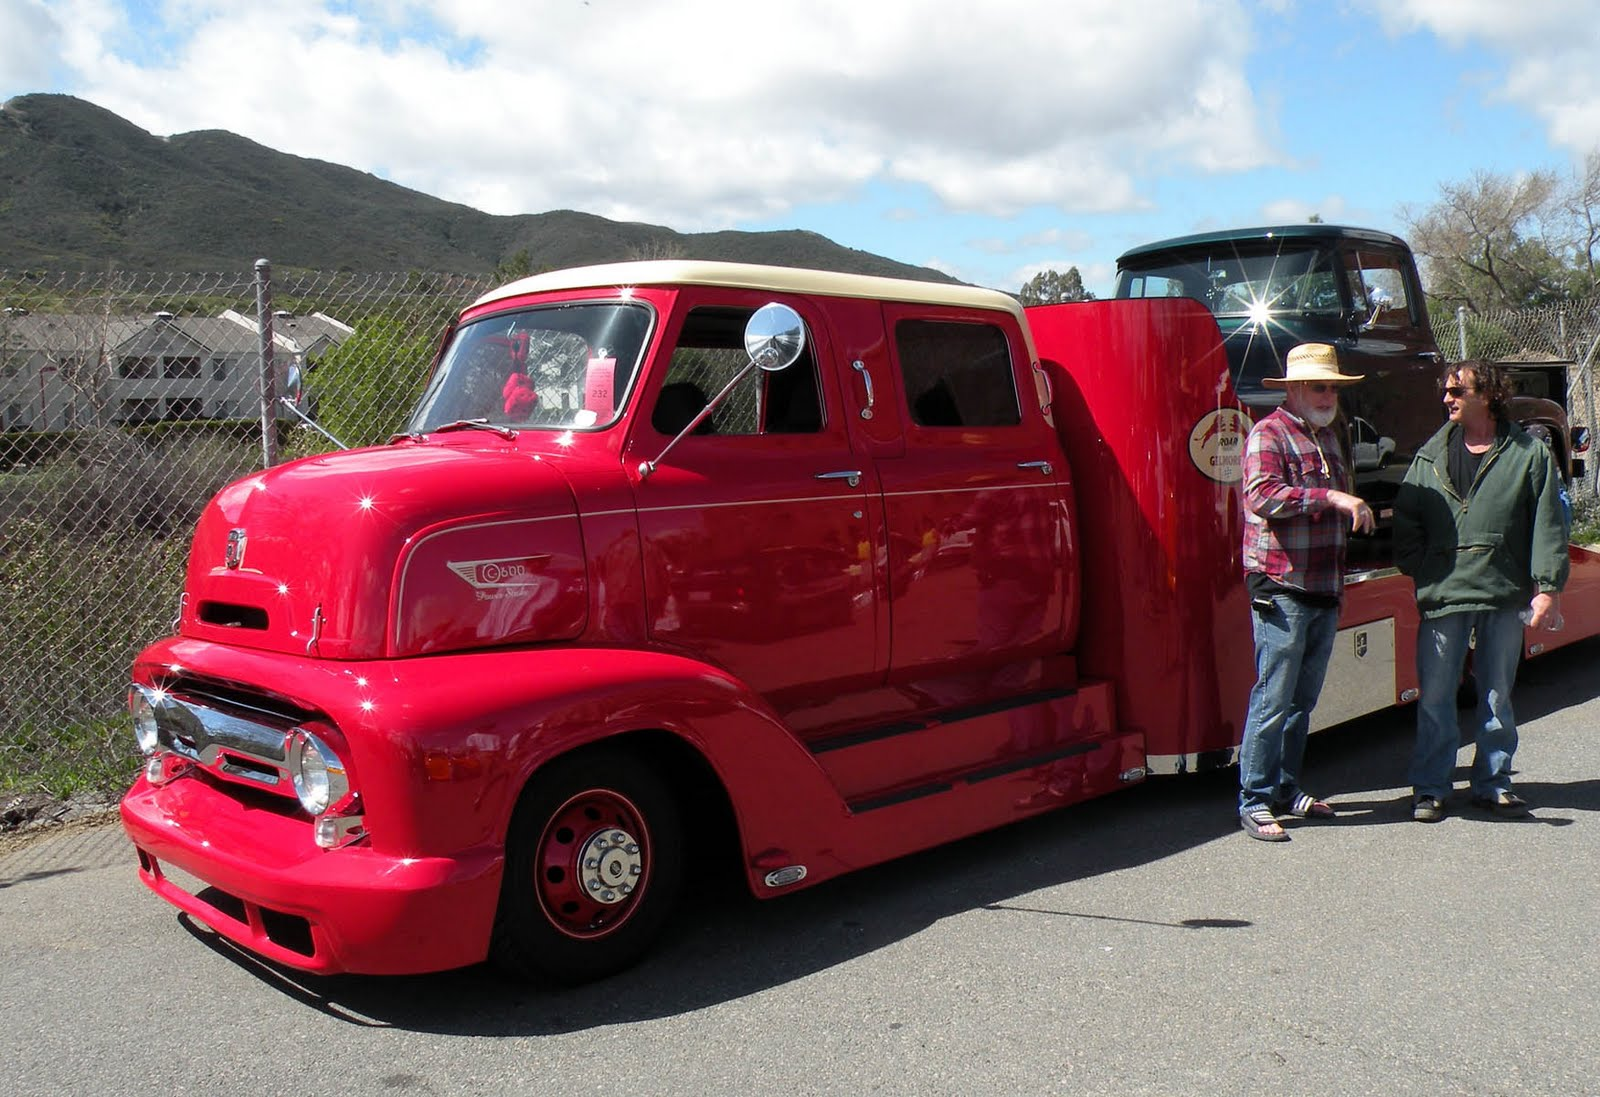 King cab 1950's COE Ford hauler from the Temecula Rod Run